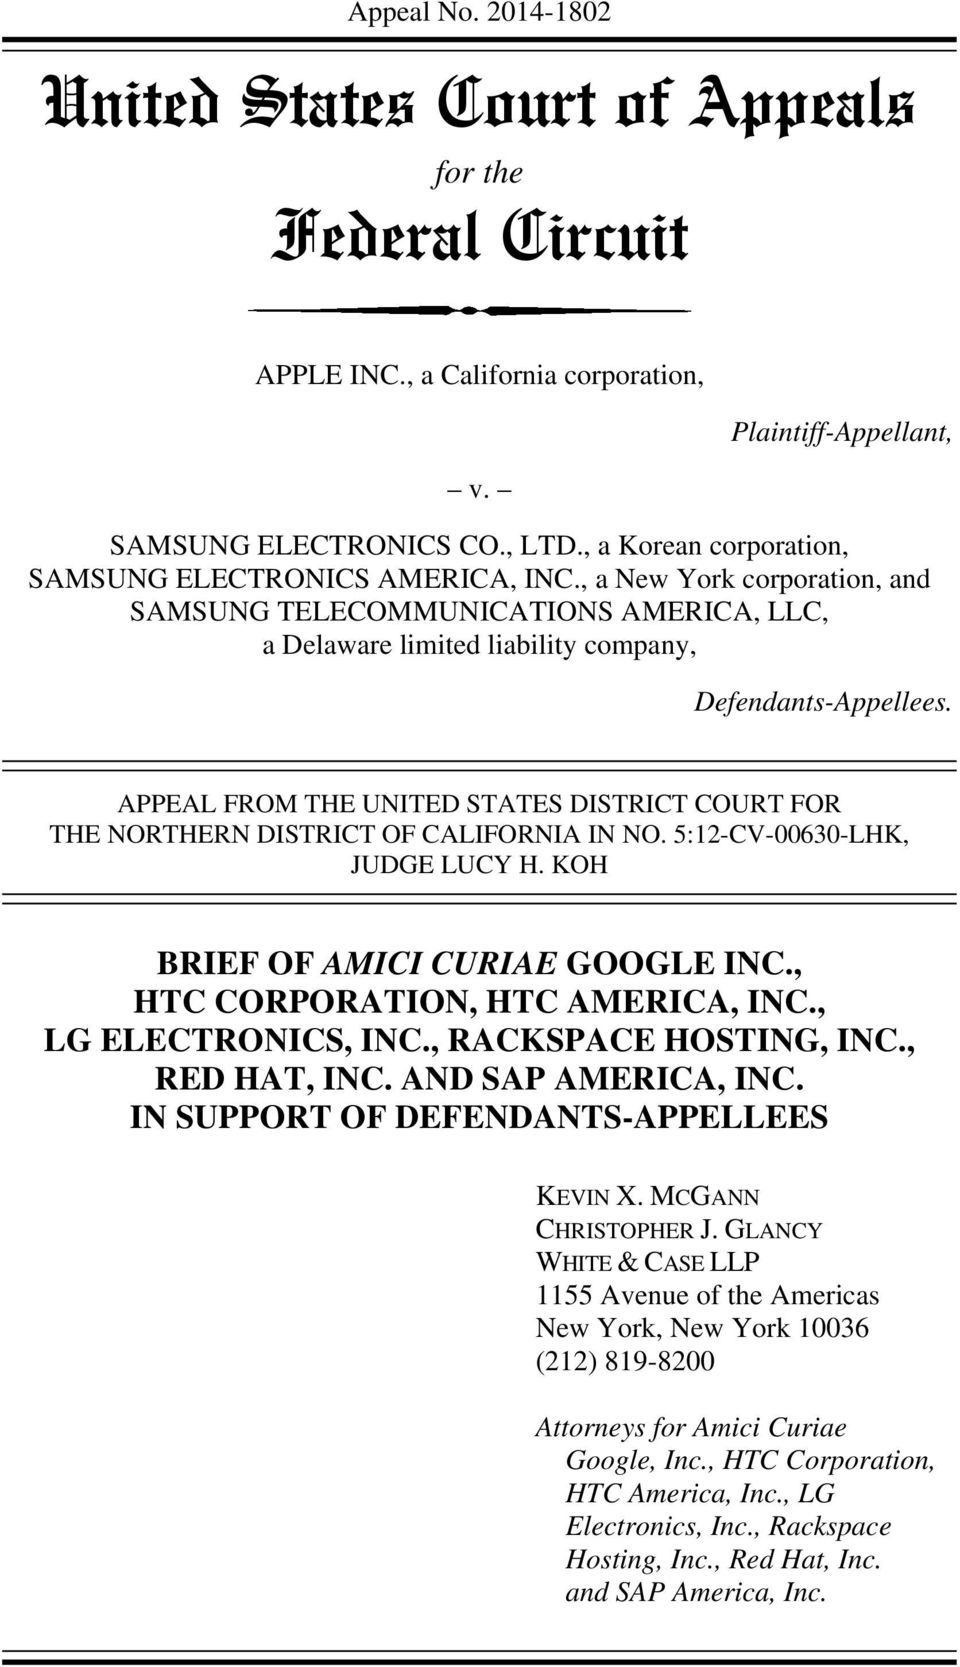 APPEAL FROM THE UNITED STATES DISTRICT COURT FOR THE NORTHERN DISTRICT OF CALIFORNIA IN NO. 5:12-CV-00630-LHK, JUDGE LUCY H. KOH BRIEF OF AMICI CURIAE GOOGLE INC., HTC CORPORATION, HTC AMERICA, INC.